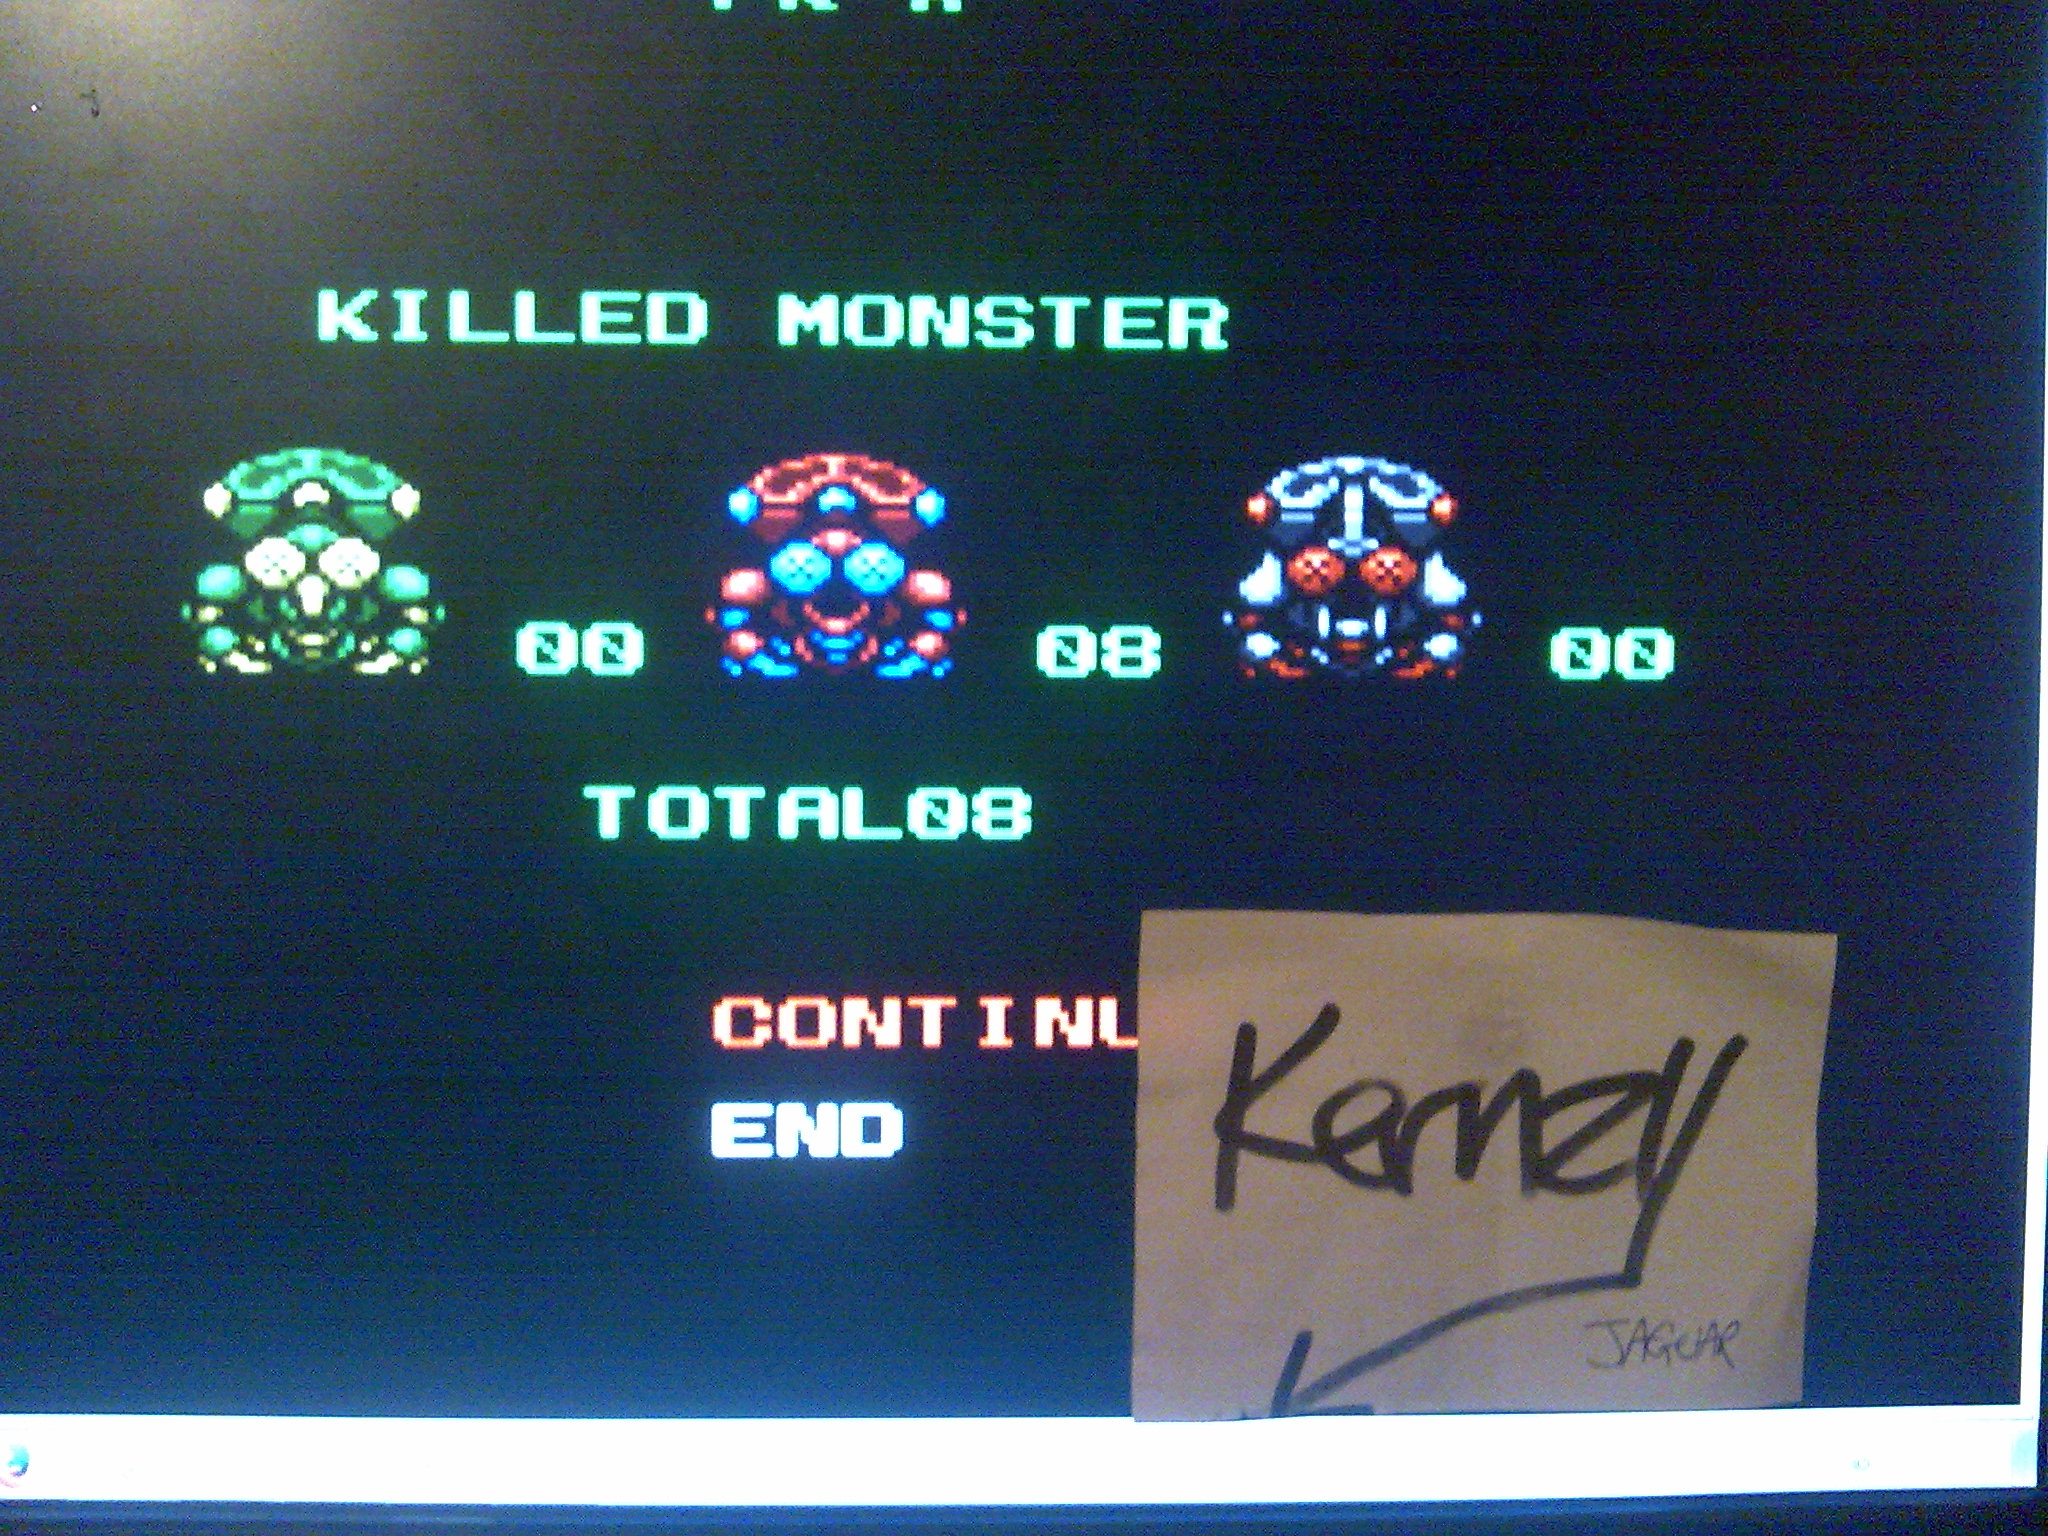 kernzy: Silent Debuggers (TurboGrafx-16/PC Engine Emulated) 8 points on 2014-10-12 17:52:10